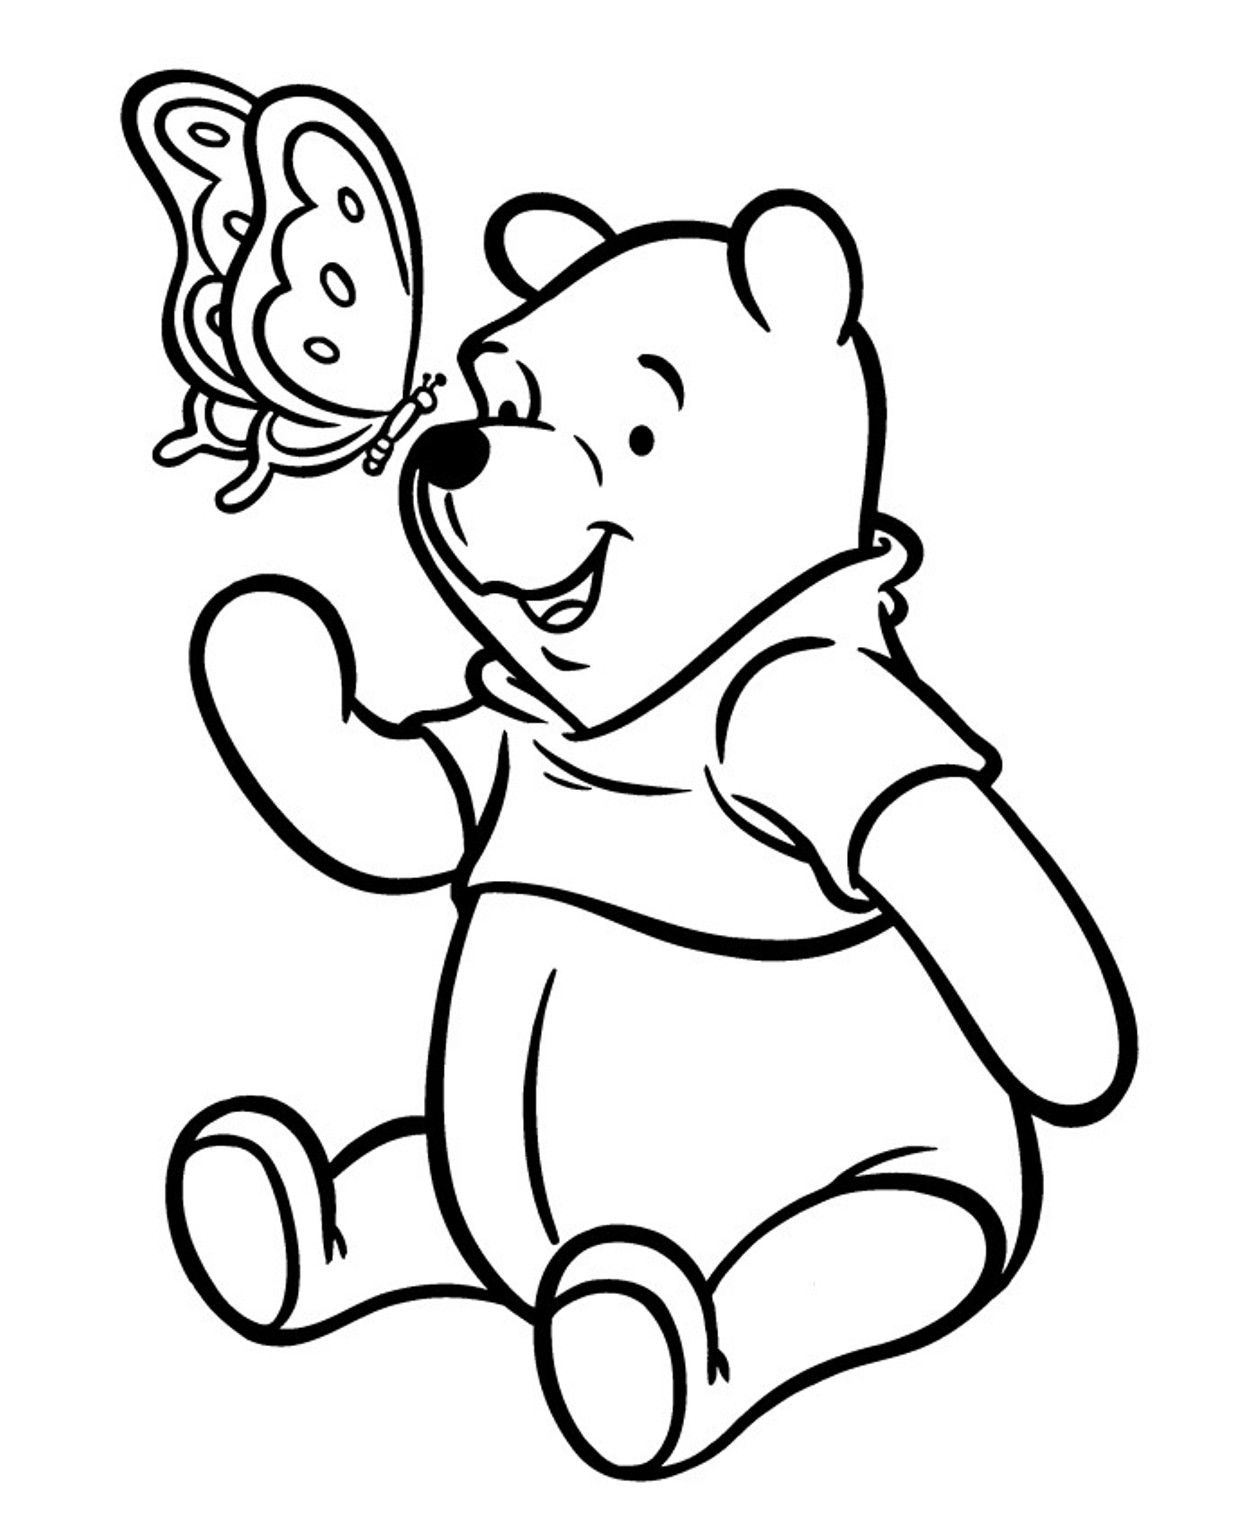 winnie the pooh pictures to color winnie the pooh coloring pages pictures pooh color winnie to the